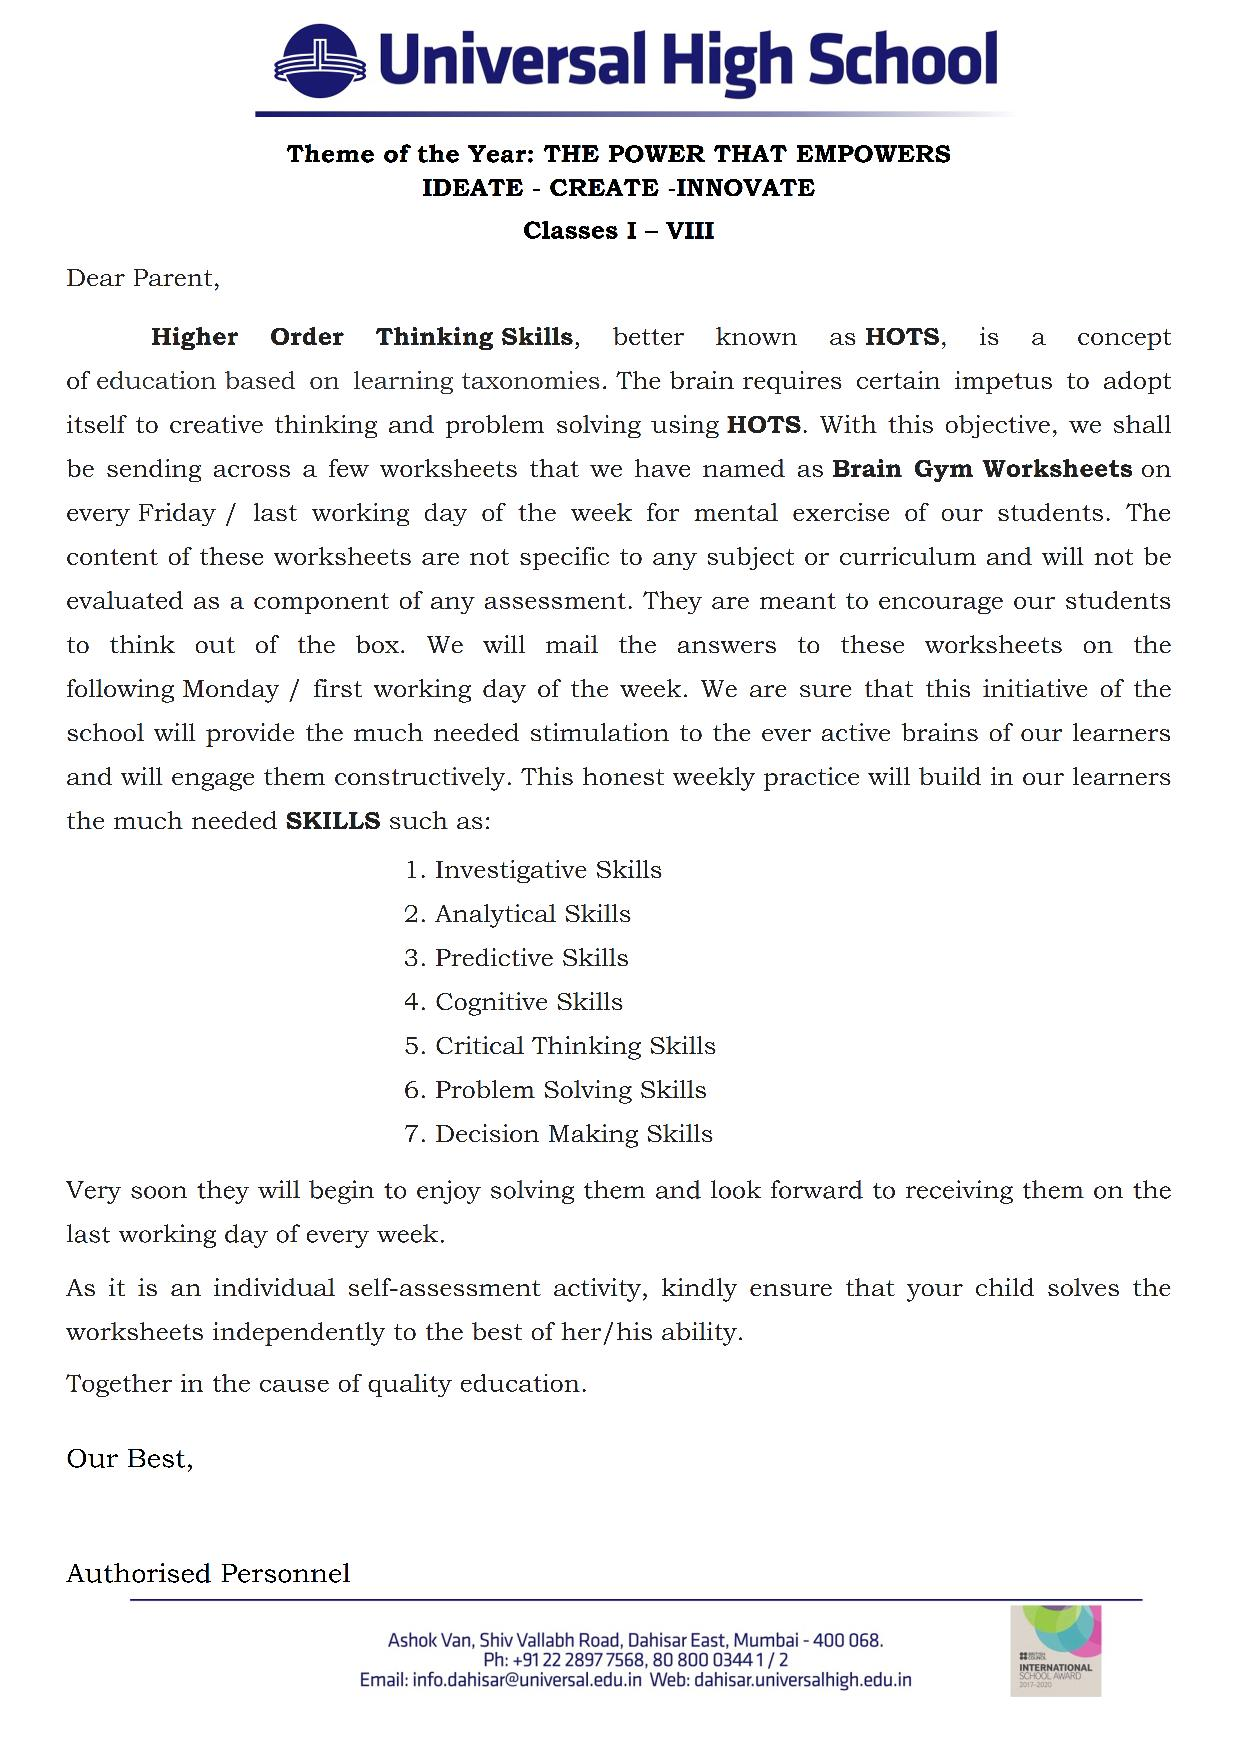 Worksheets For Gym Class : Classes i to viii brain gym worksheets universal high